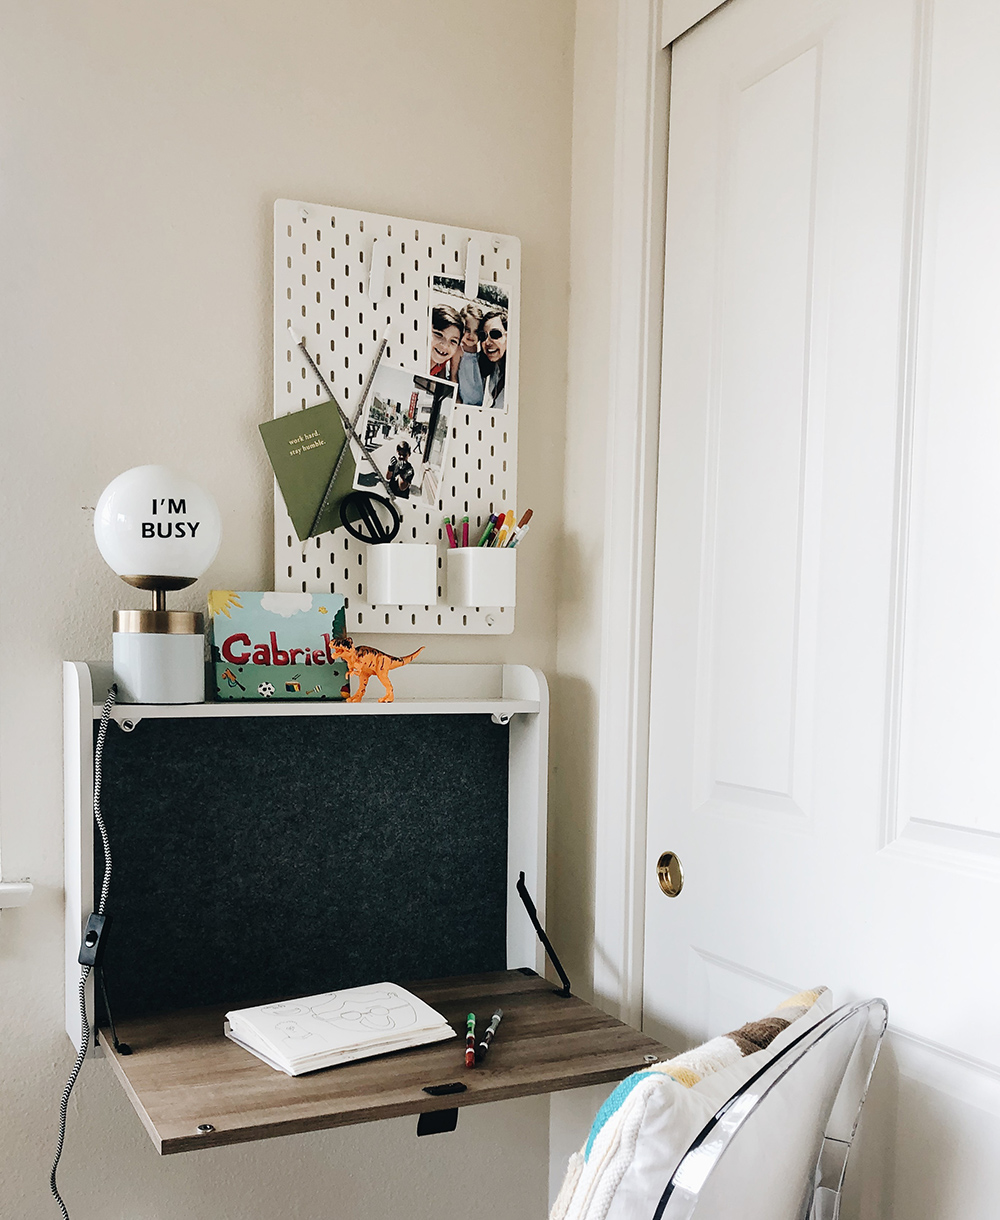 Wall mounted desk and pegboard for a small space kids room!